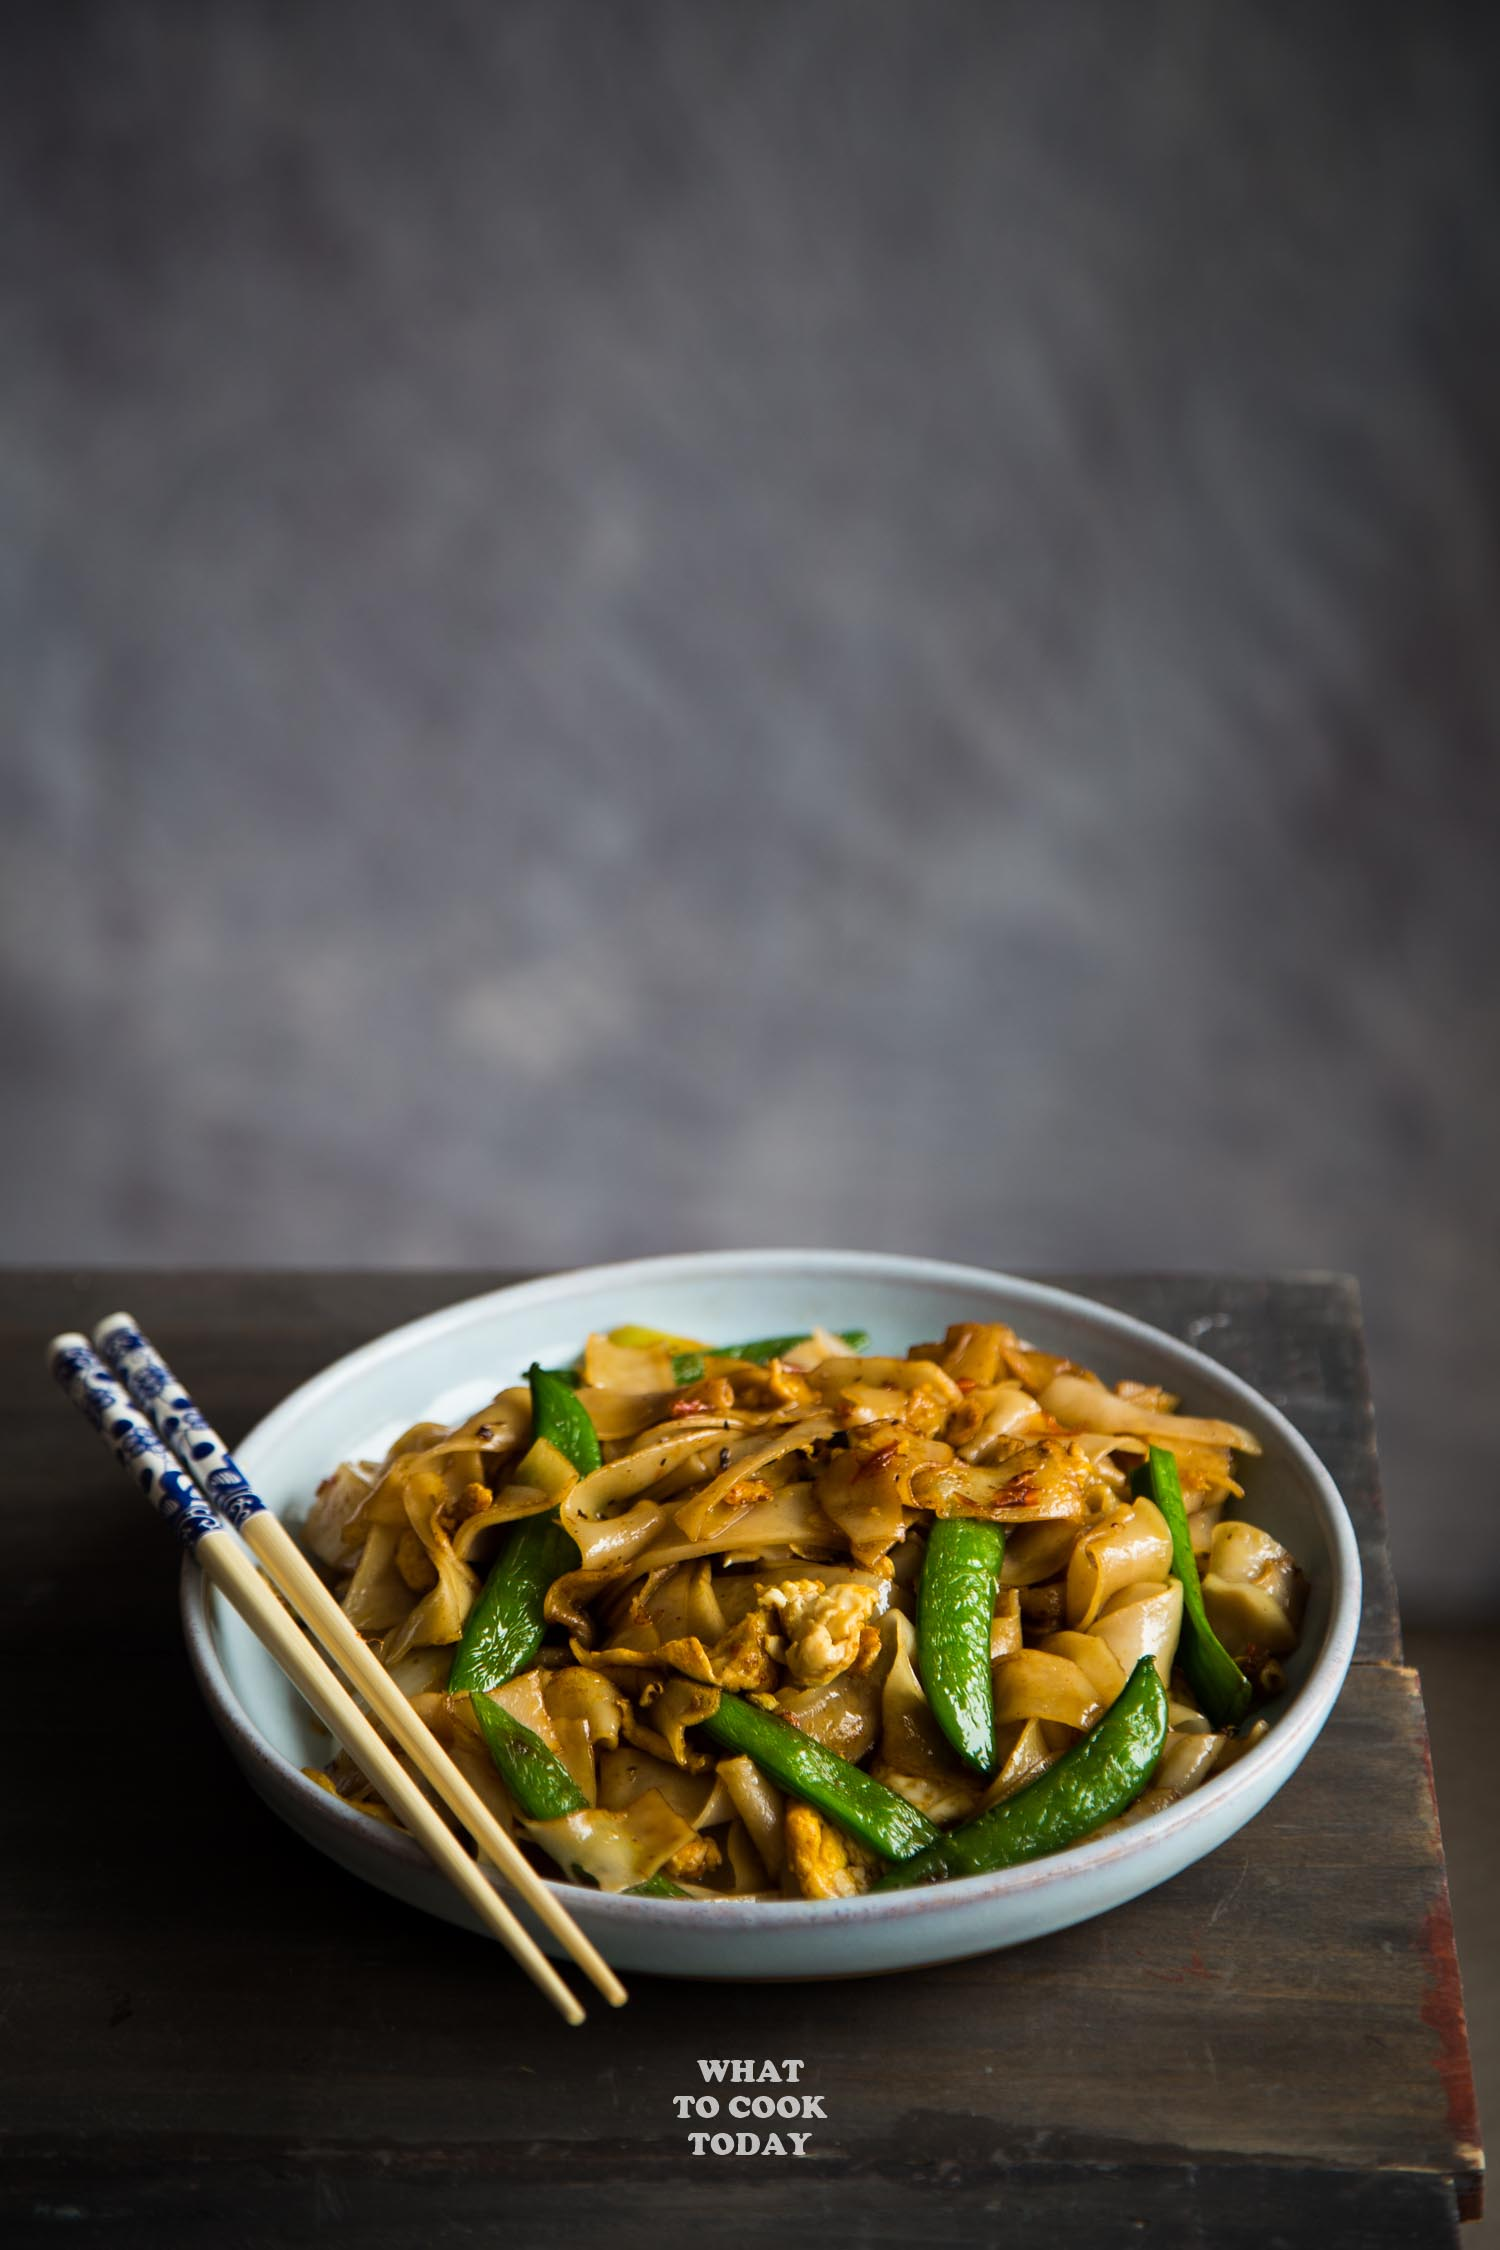 Easy and Quick Stir-fried Flat Rice Noodles with Chili Bean Sauce